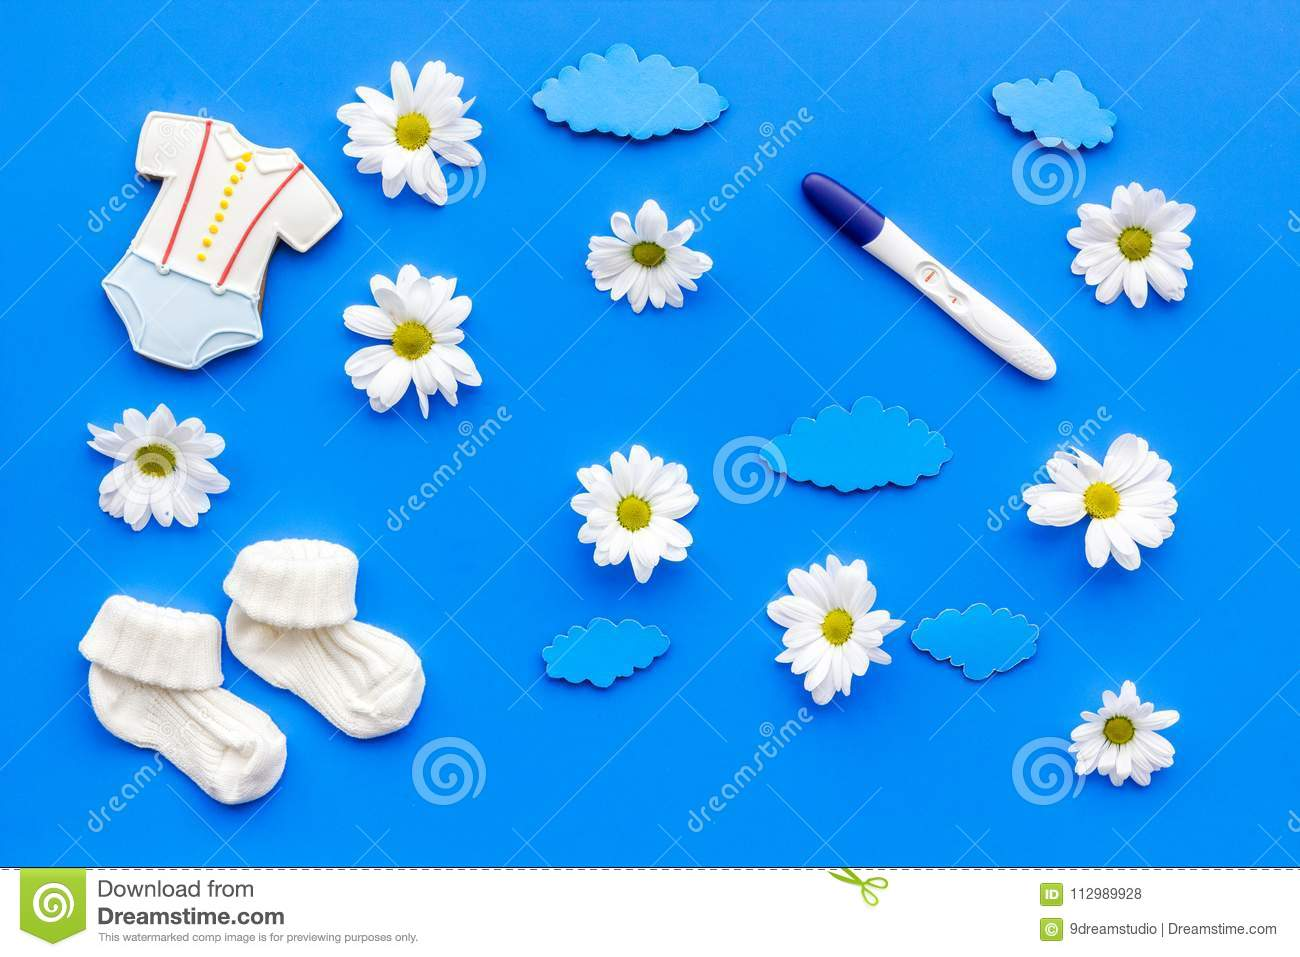 Waiting for a baby with positive pregnancy test and flowers blue background top view